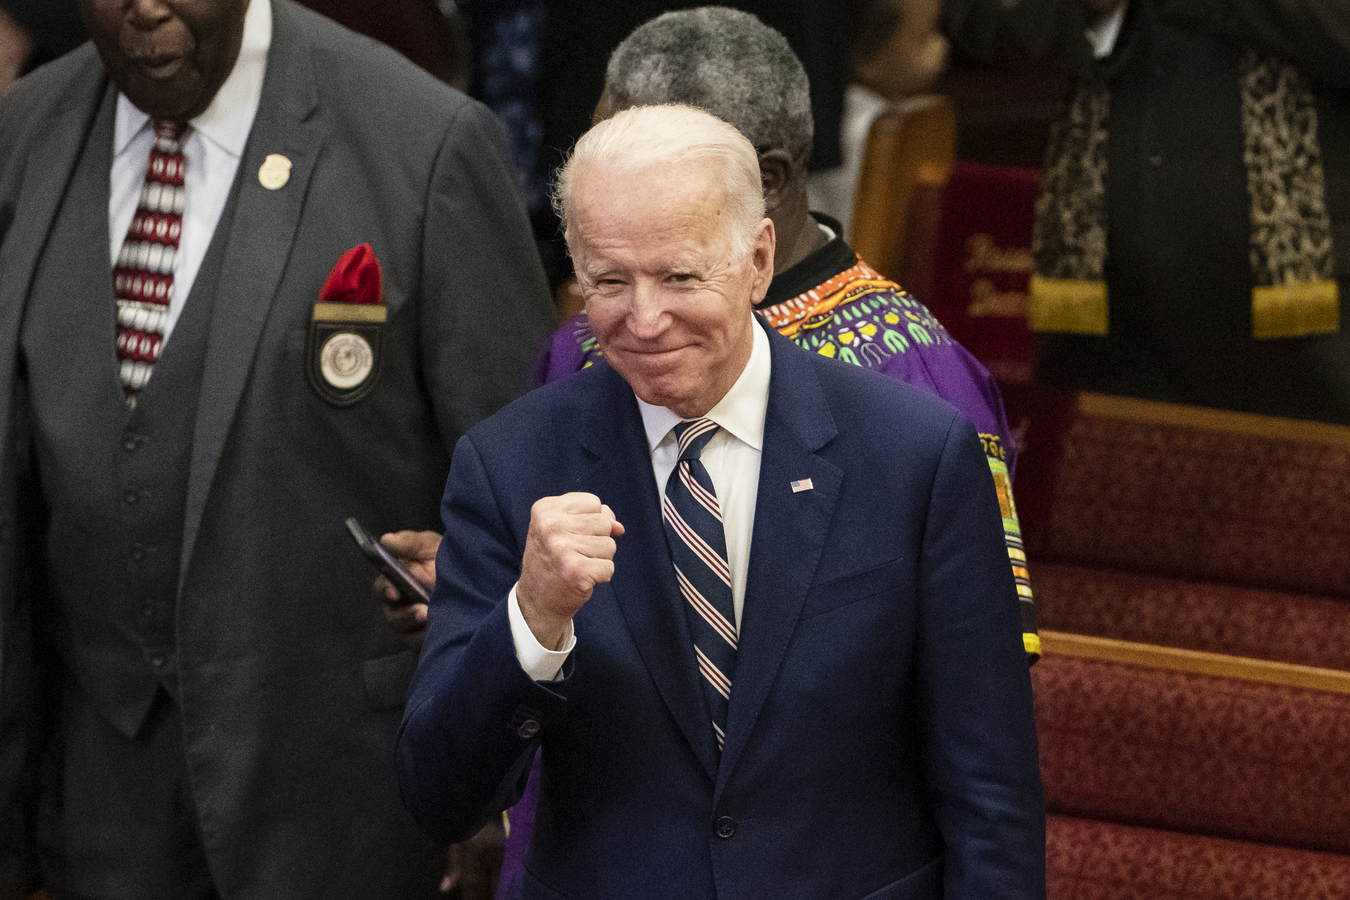 Democratic presidential candidate Joe Biden departs services at the Royal Missionary Baptist Church in North Charleston, S.C., on Feb. 23. (AP Photo/Matt Rourke)